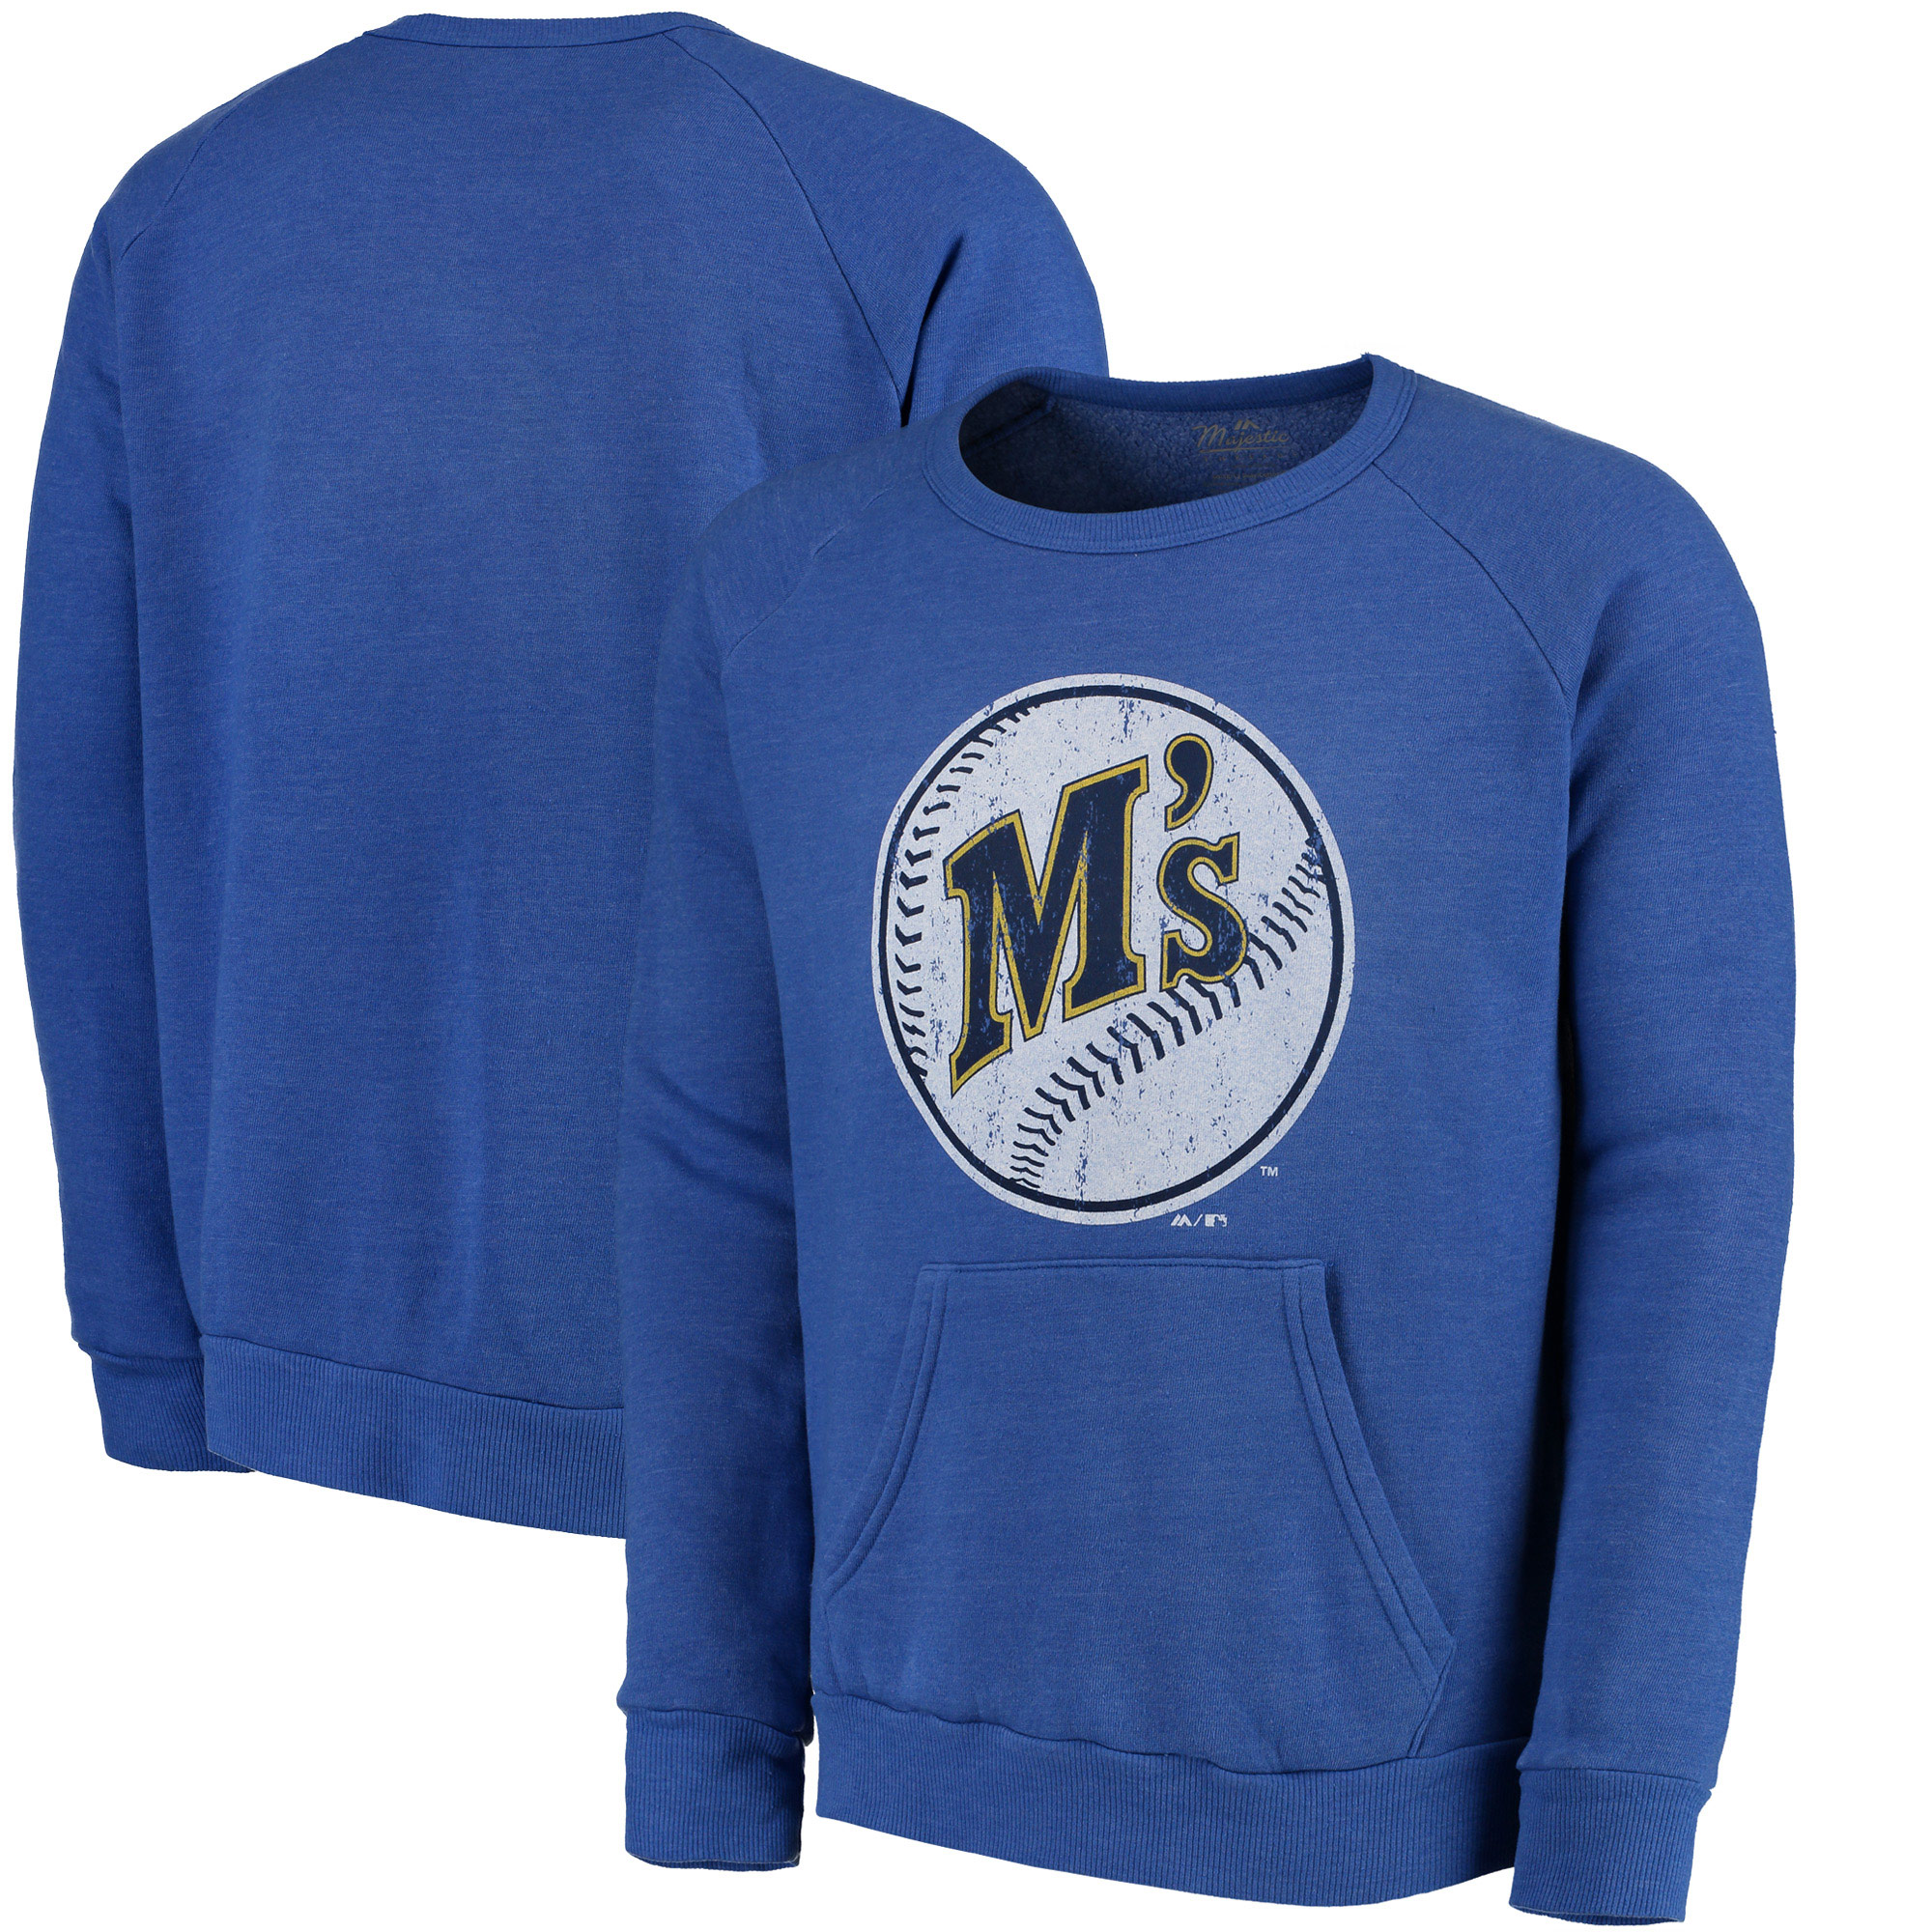 Seattle Mariners Majestic Threads Cooperstown Collection Tri-Blend Pocket Fleece Sweatshirt - Royal